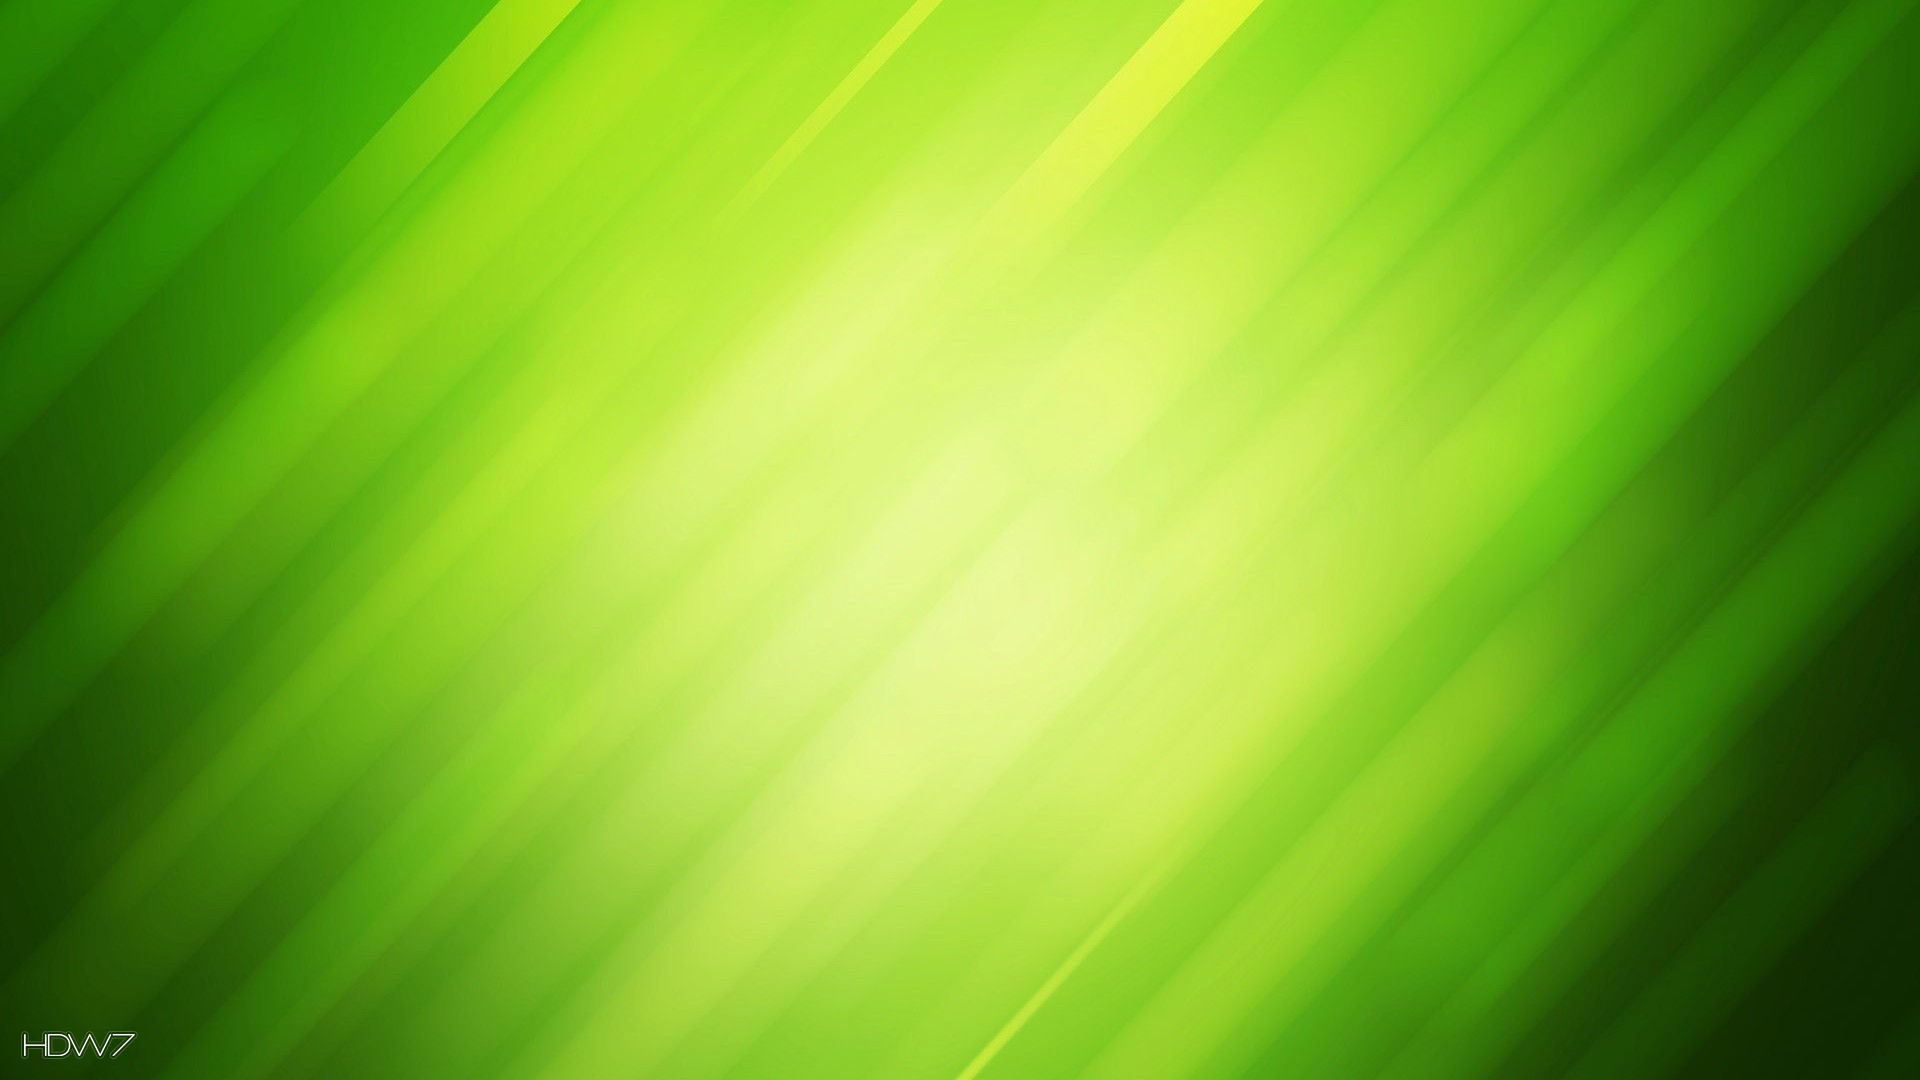 Green HD Wallpapers 1080p